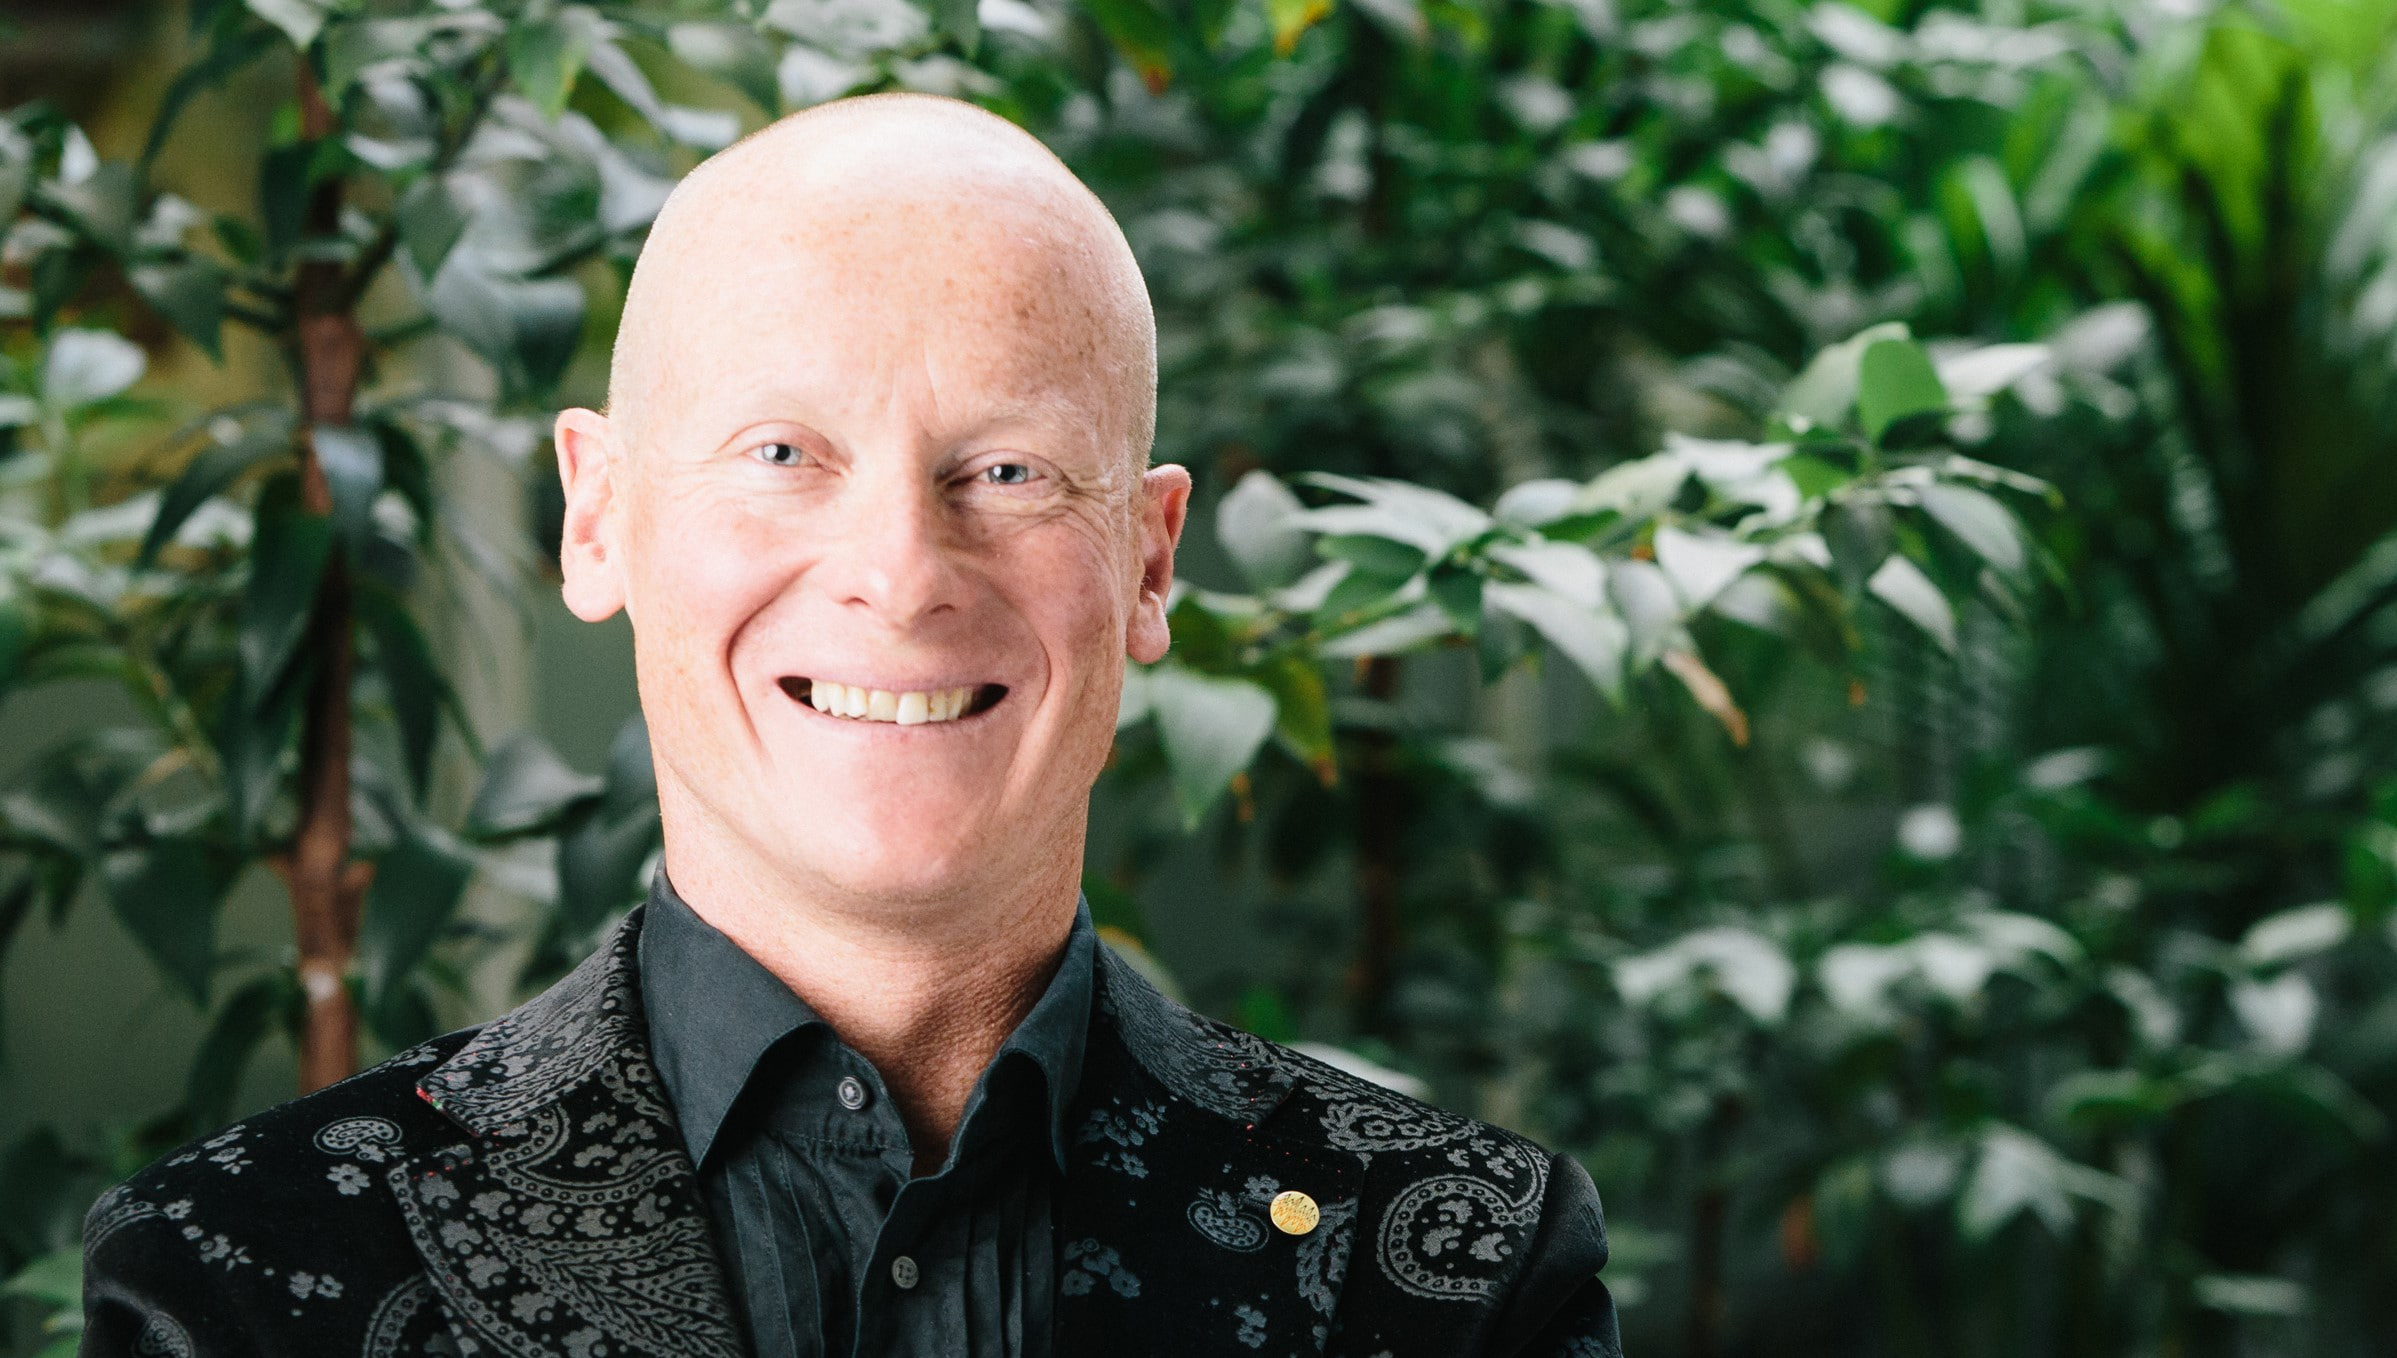 Jon is seen smiling broadly and wearing a black paisley business jacket and shirt. He is standing in front of some tall green plants